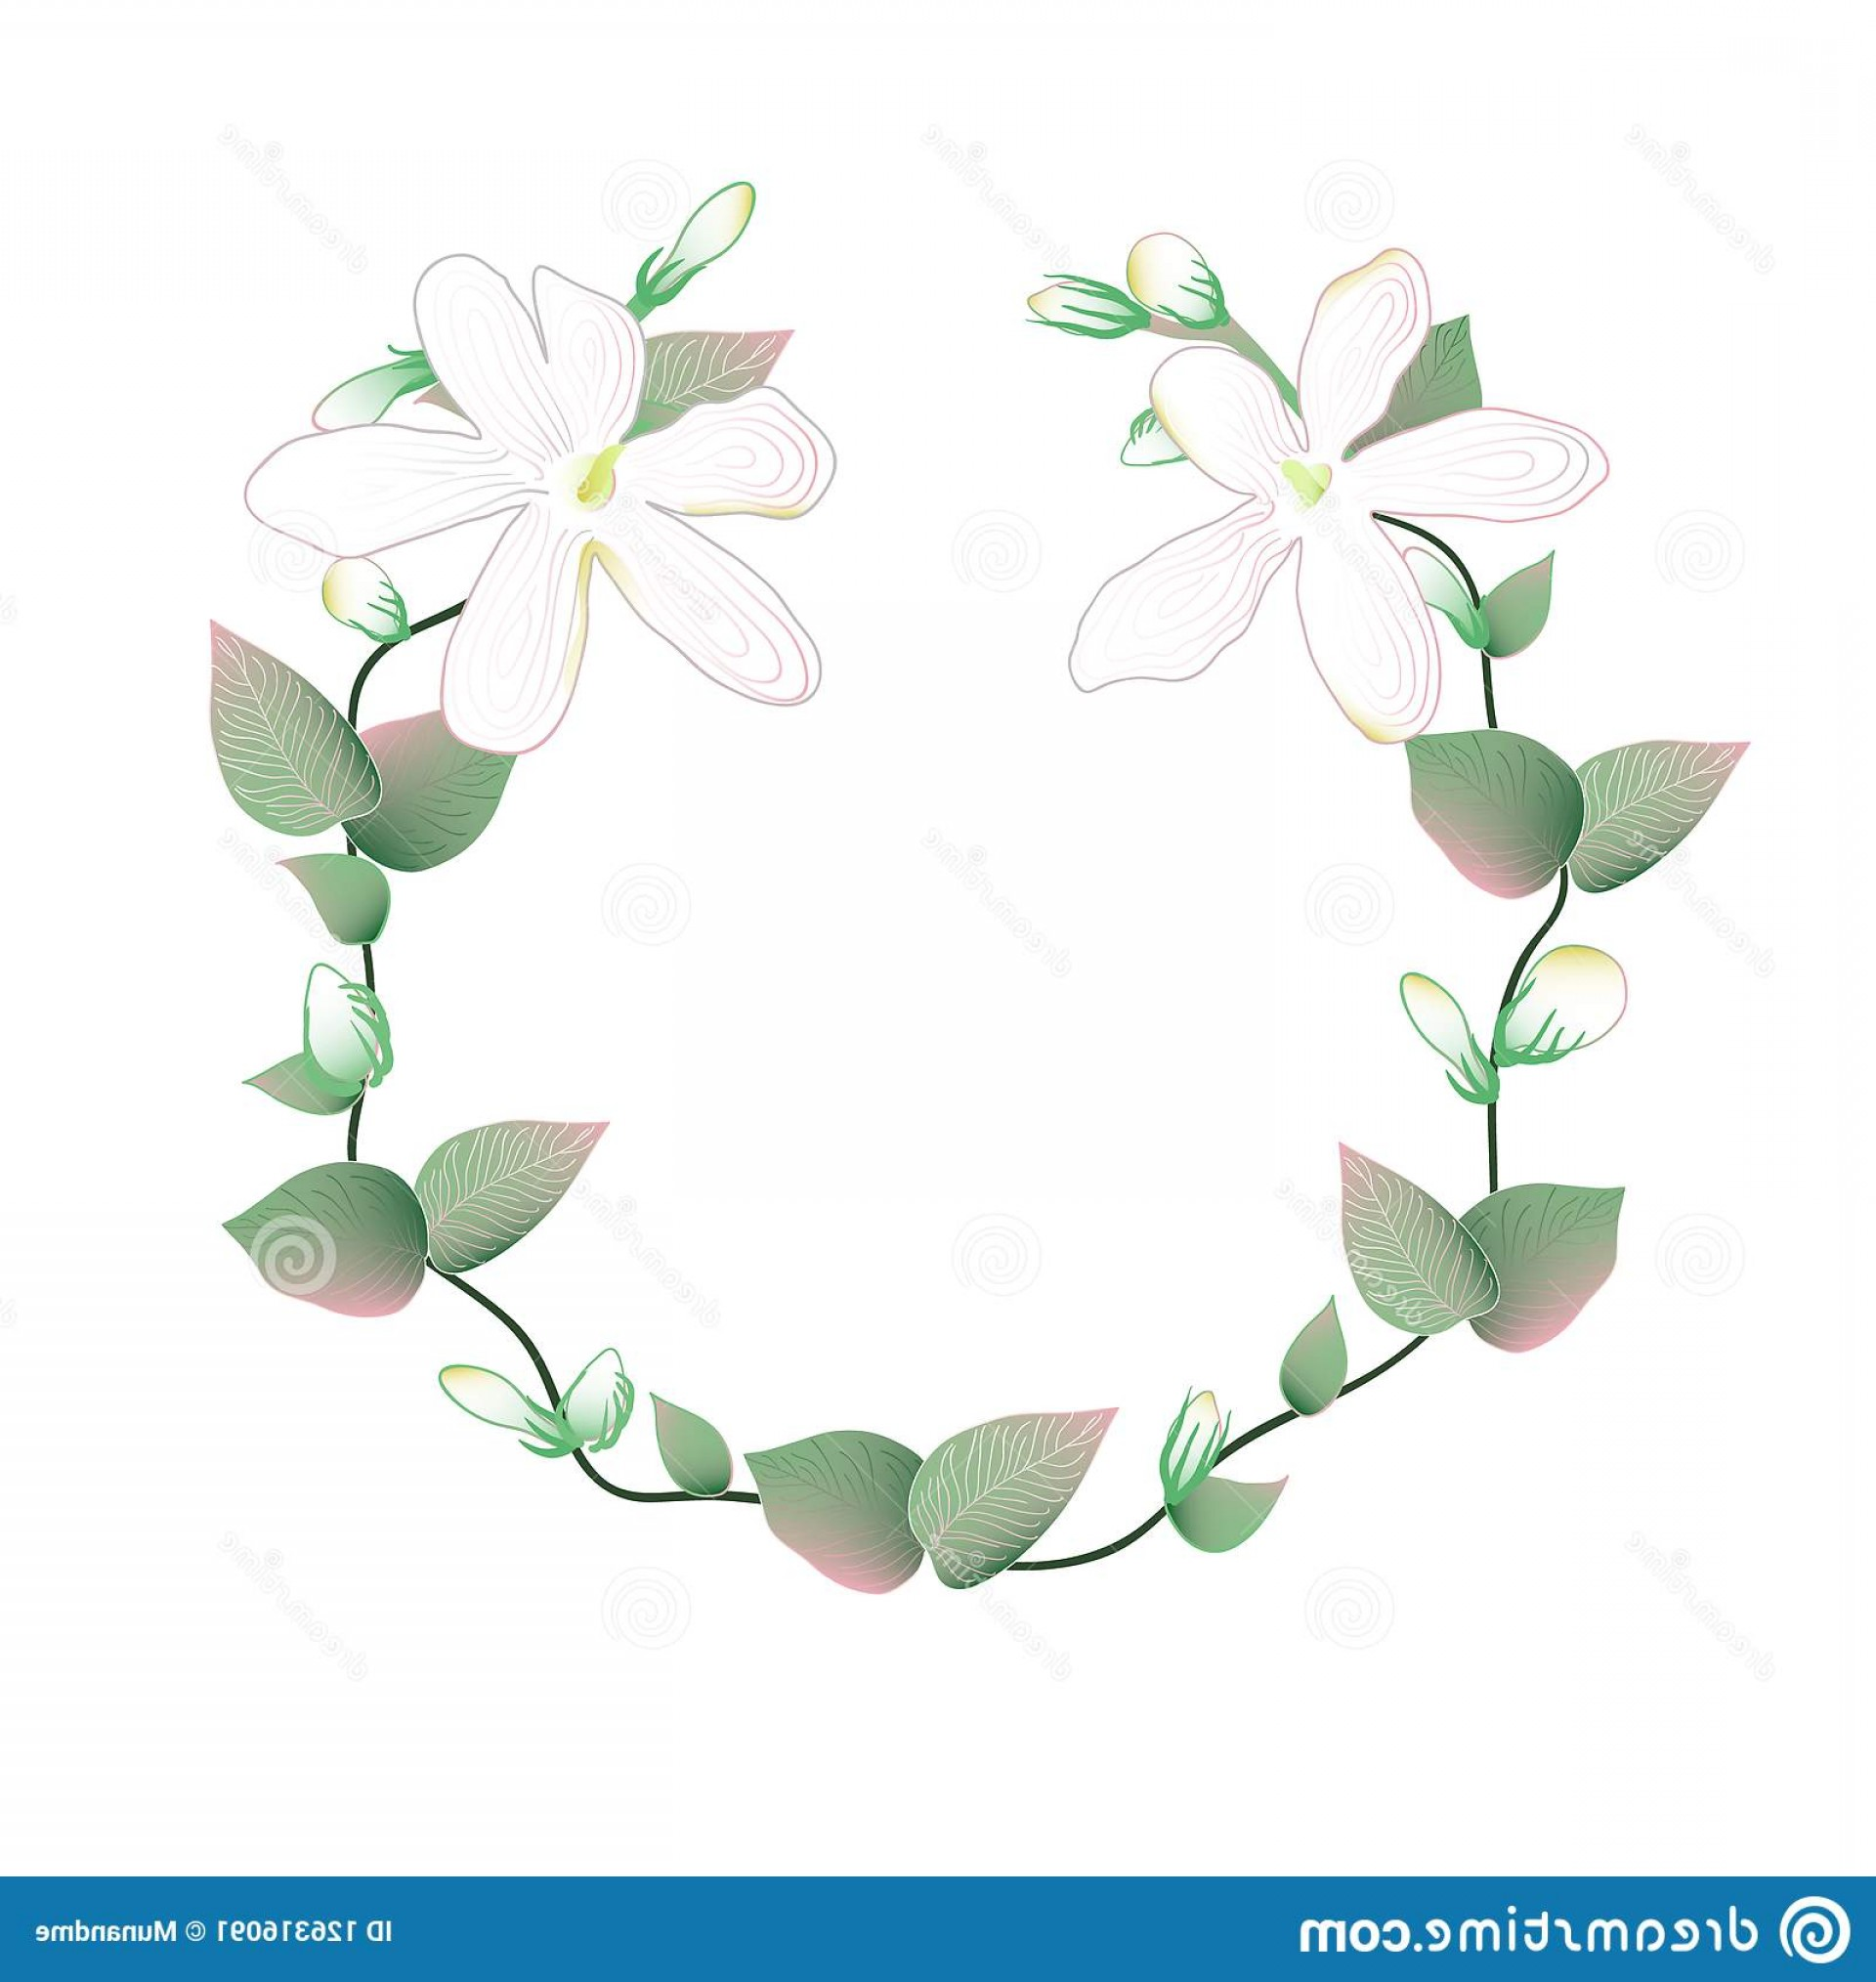 Vector Image Of A Budding Flower: Blooming Budding Jasmine Flowers Wreath White Image